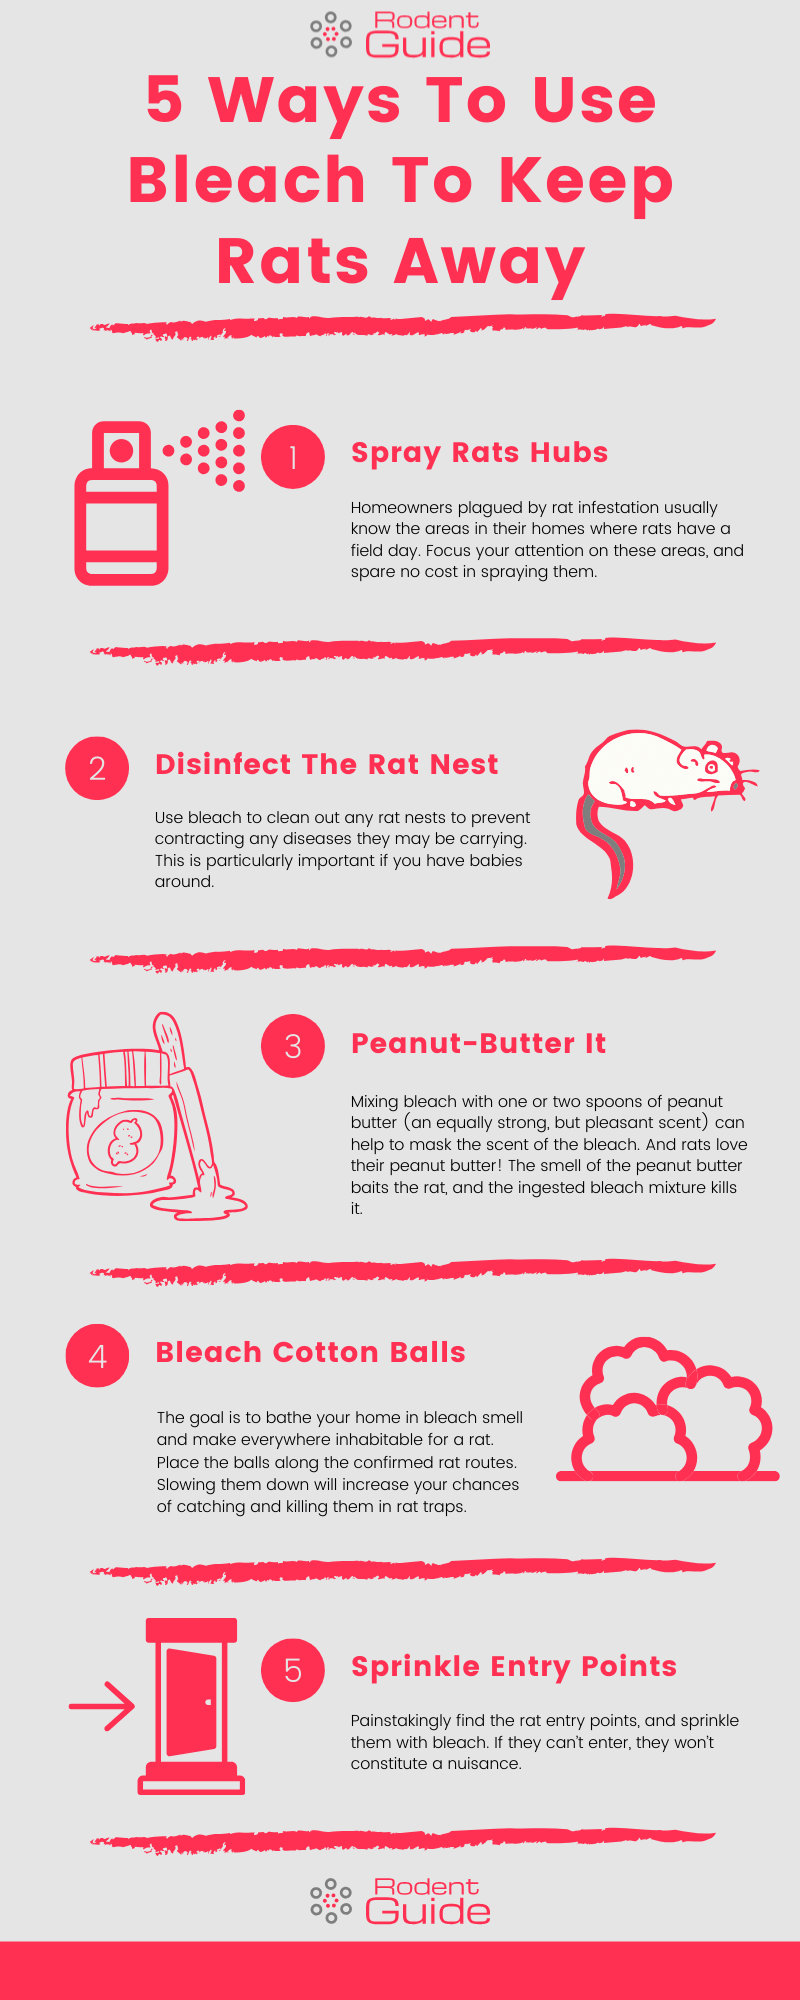 5 Ways To Use Bleach To Keep Rats Away Infographic